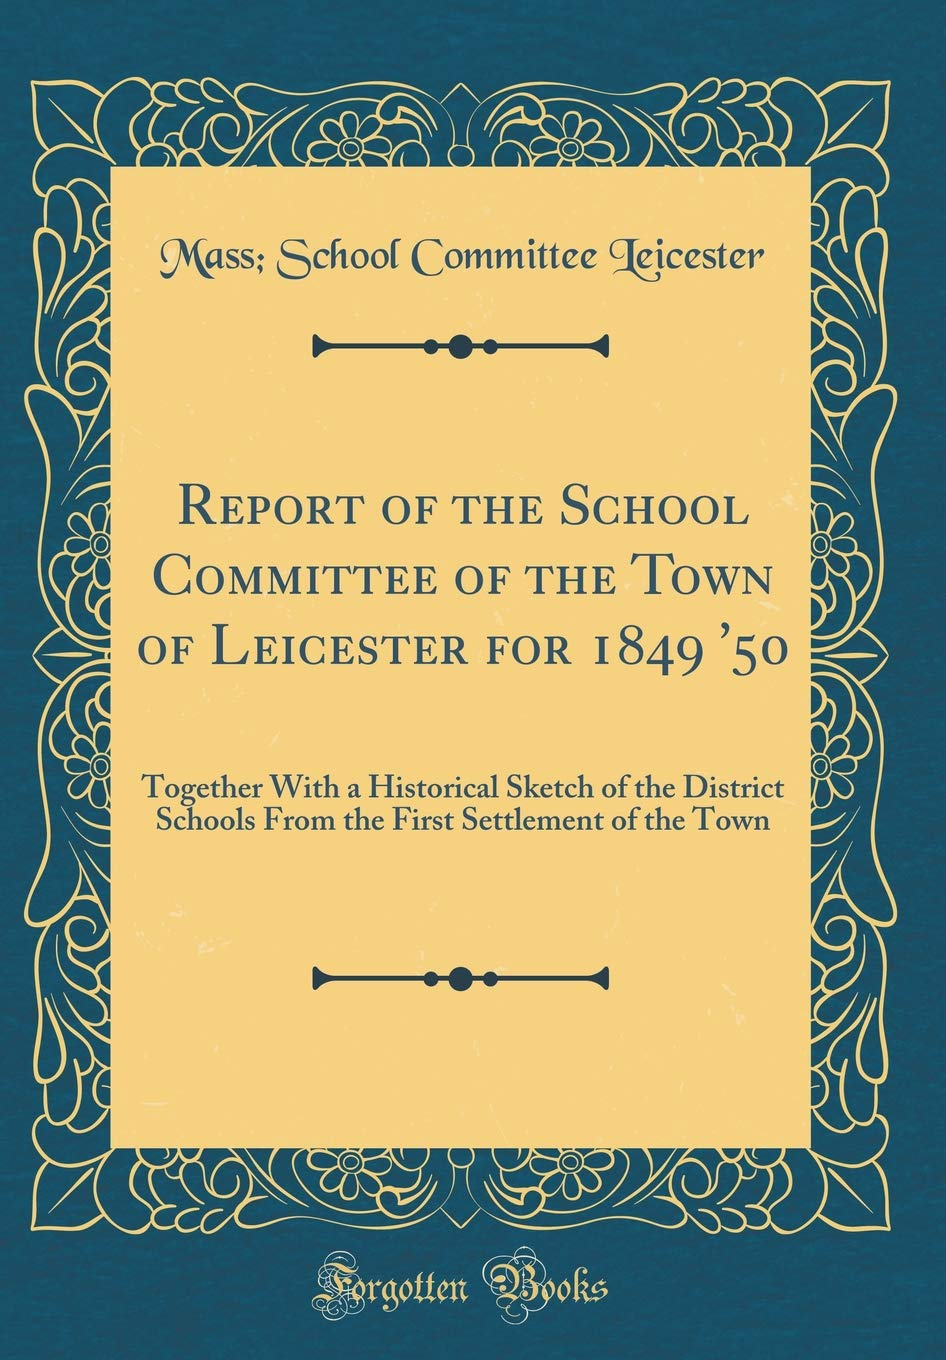 Report of the School Committee of the Town of Leicester for 1849 '50: Together With a Historical Sketch of the District Schools From the First Settlement of the Town (Classic Reprint) pdf epub